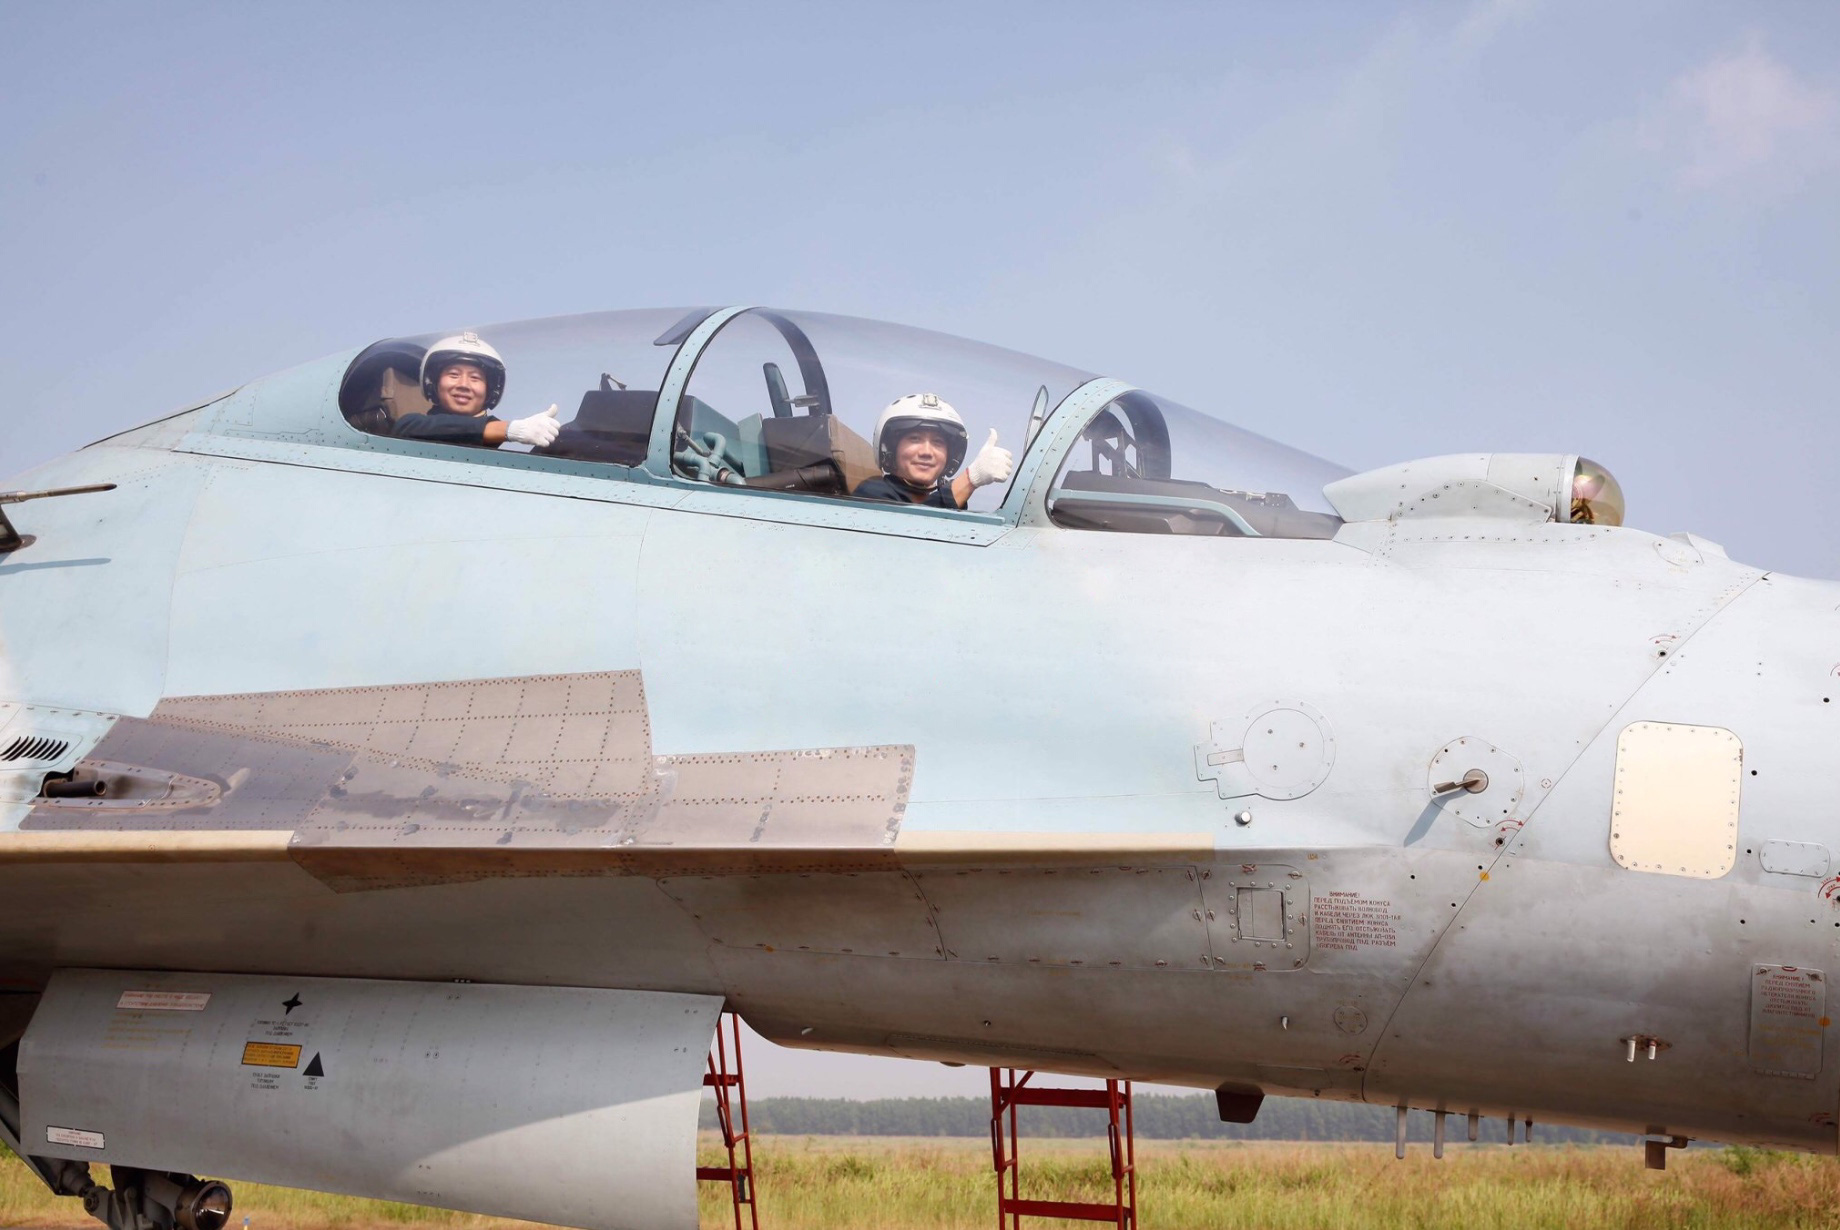 Vietnamese fighter jet pilot Nguyen Quang Sang (left) prepares to fly a Su-30MK2 aircraft in this provided photo.